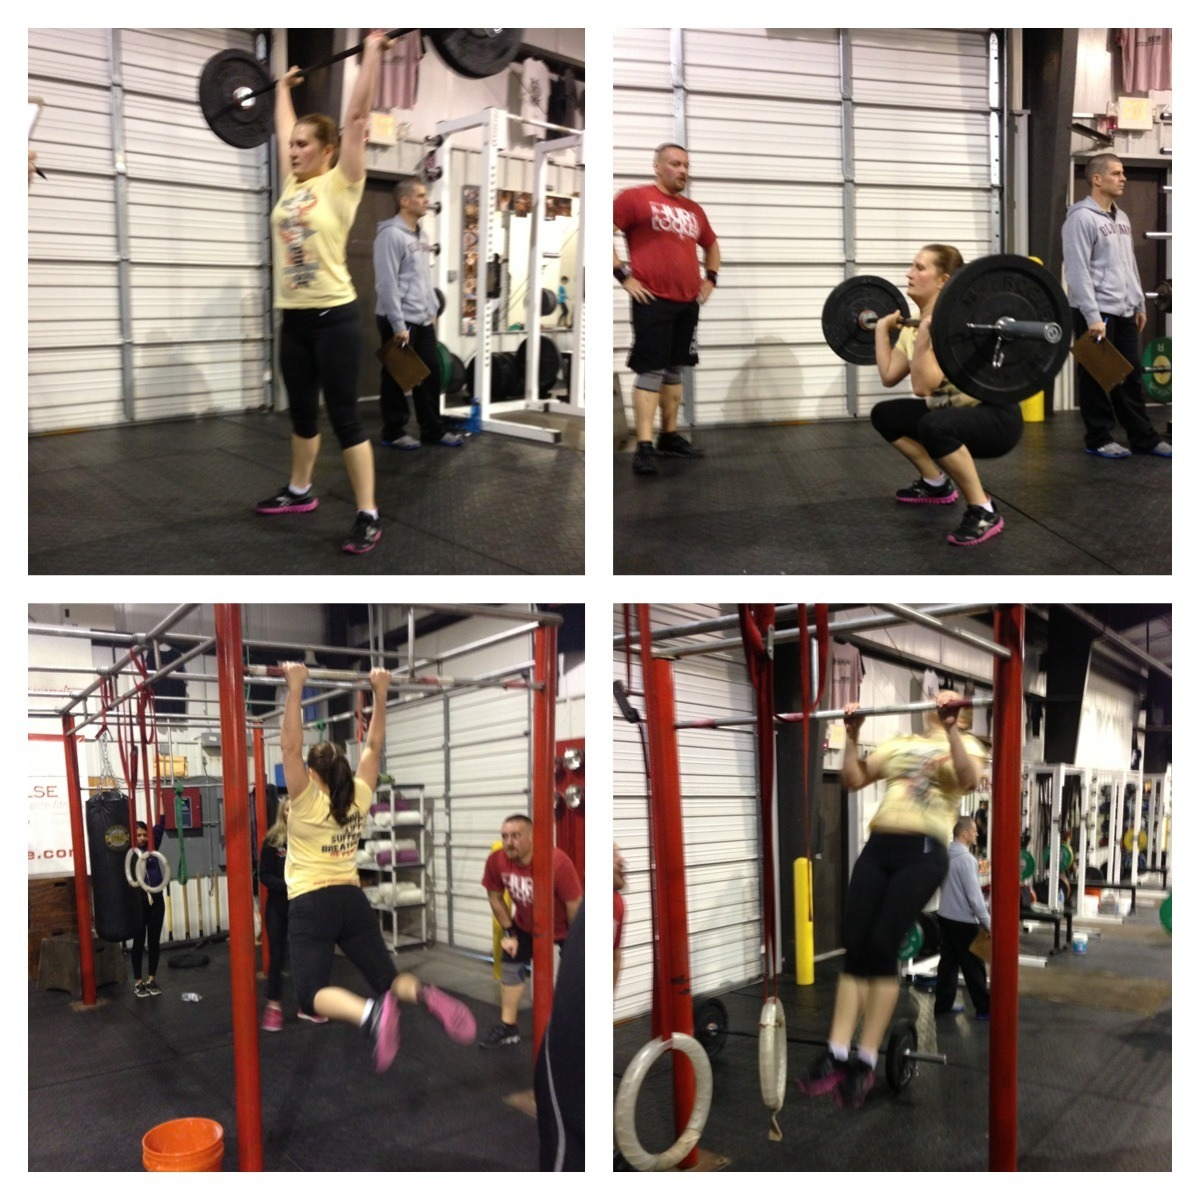 "The final WOD of the Open and my wife and I got to cheer each other on. Couldn't think of a better way to close this out. What will stand out in my mind is not what I did or did not do, but more of her accomplishments. With each WOD she initially thought it was beyond her, yet she still went in and achieved above and beyond her expectations. I think she proved a lot to herself that she is more capable than she realizes. That has been really awesome to watch. Last night, was no different. You see, up until last night, she was still using the smallest band for pull-ups and had never done an unbanded pull-up. I couldn't be more proud. maeinanutshell:  13.5 Went into this ""praying"" for one C2B! Last pull-ups in a WOD were on the smallest bands which i just moved to in February. Came out with 8 C2B!!! Feeling accomplished and never more happy that I entered the Open! Sad that it is over… Next games season is when?? ;-)"